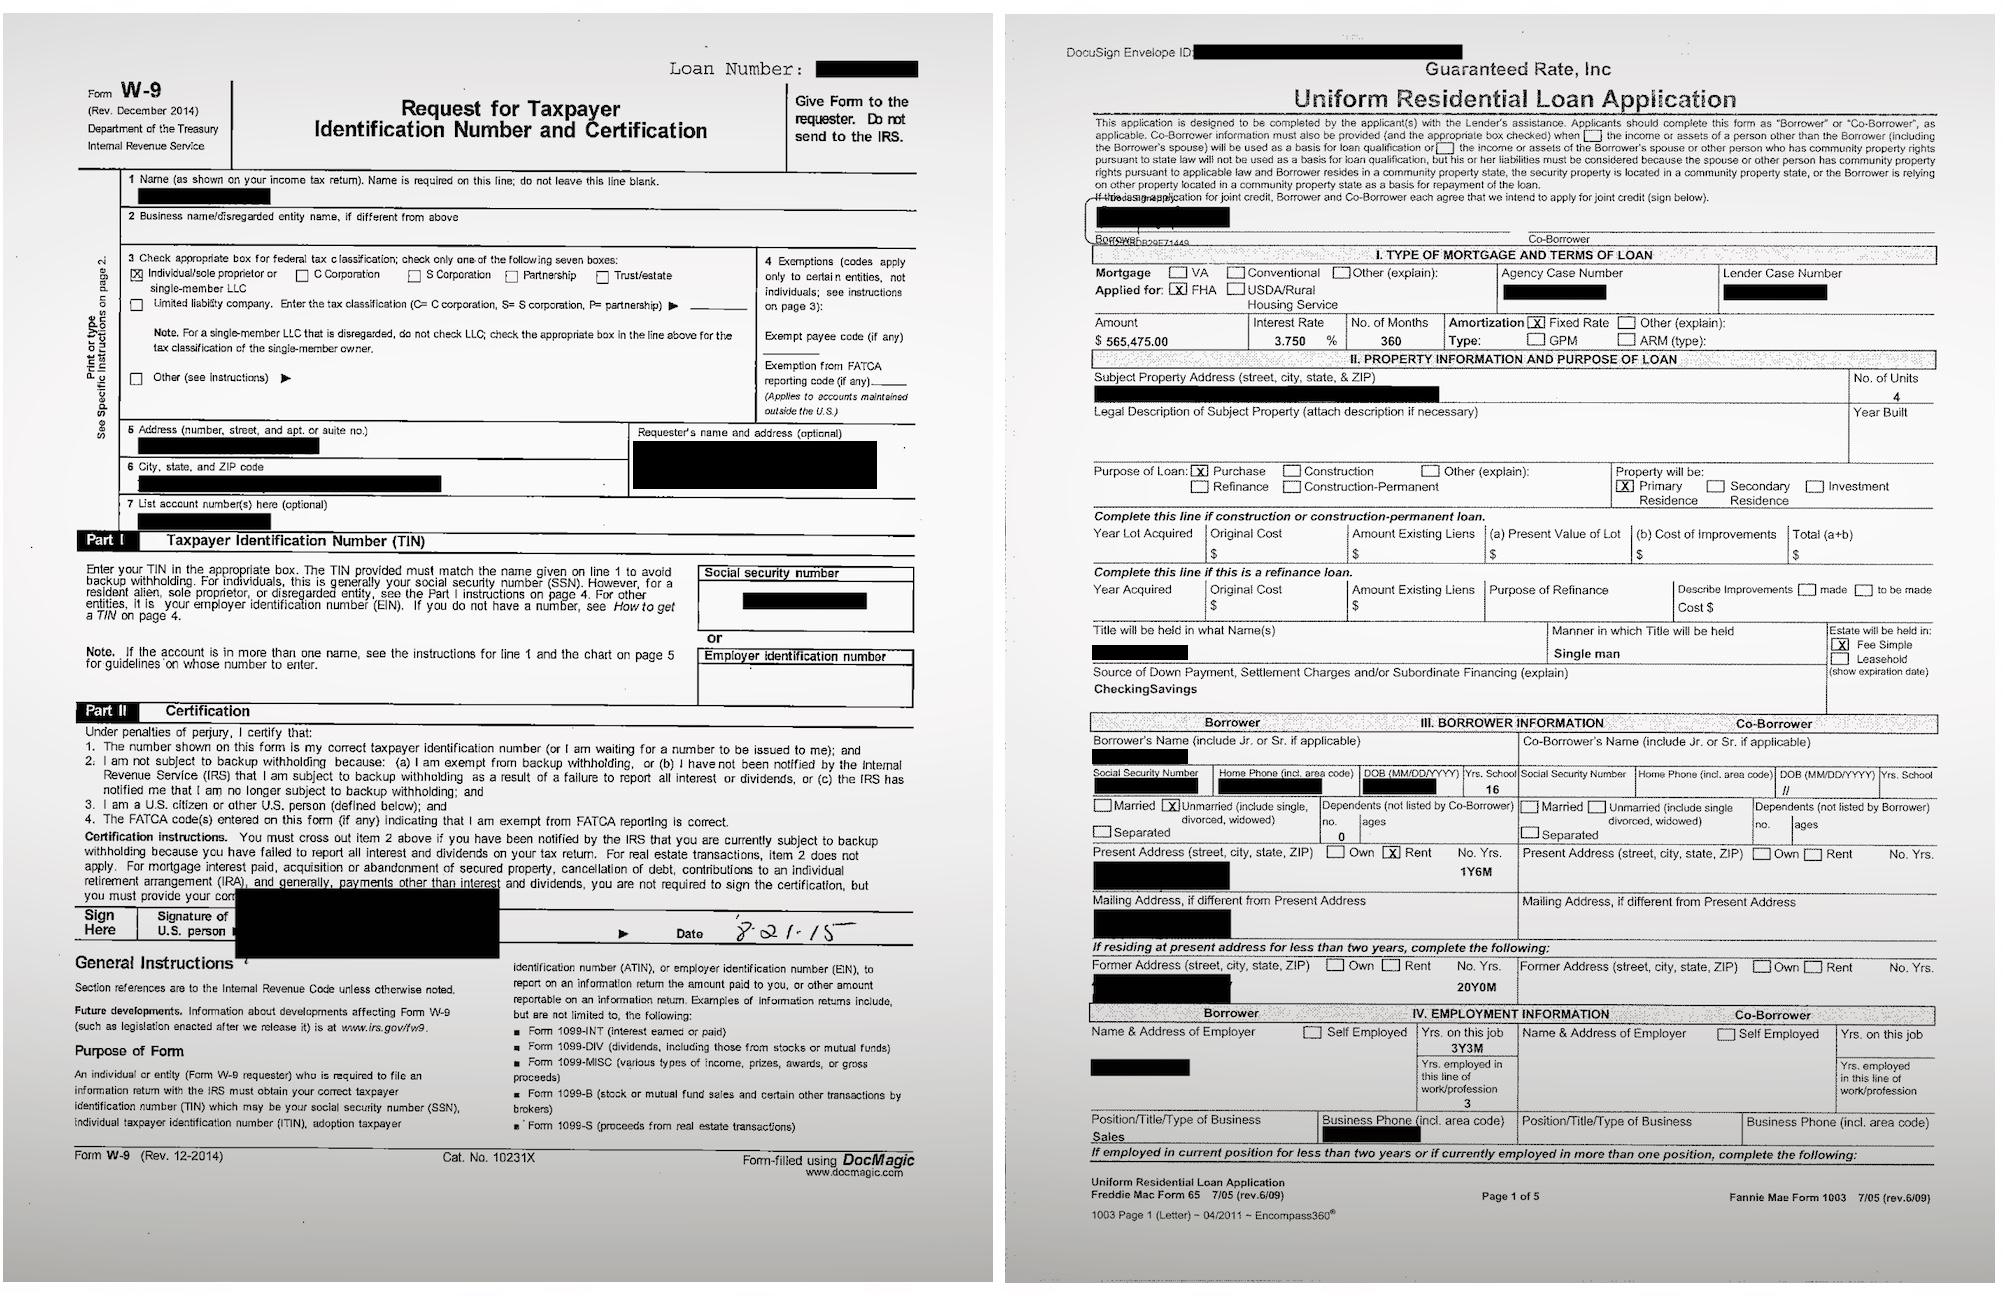 Massive mortgage and loan data leak gets worse as original documents